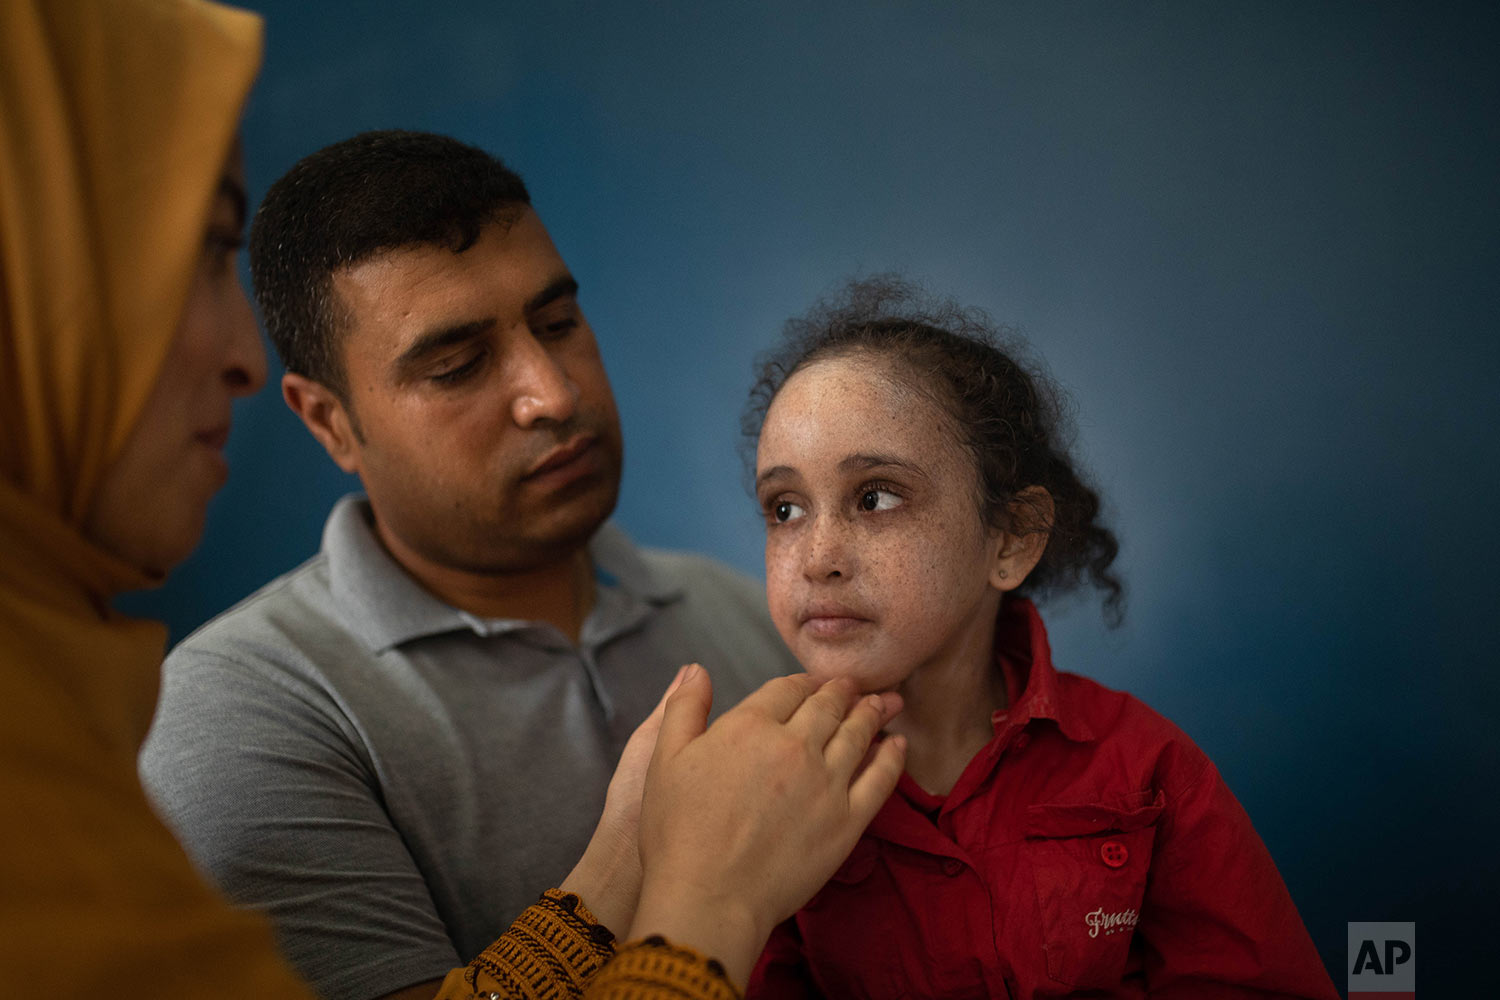 Rabiaa Waraqa, left, and Salaheddine Elkalshi, center, apply a cream to their 6 year old daughter Yasmin, who is affected by a rare disorder called xeroderma pigmentosum, or XP, in Casablanca, Morocco, July 24, 2019. (AP Photo/Mosa'ab Elshamy)